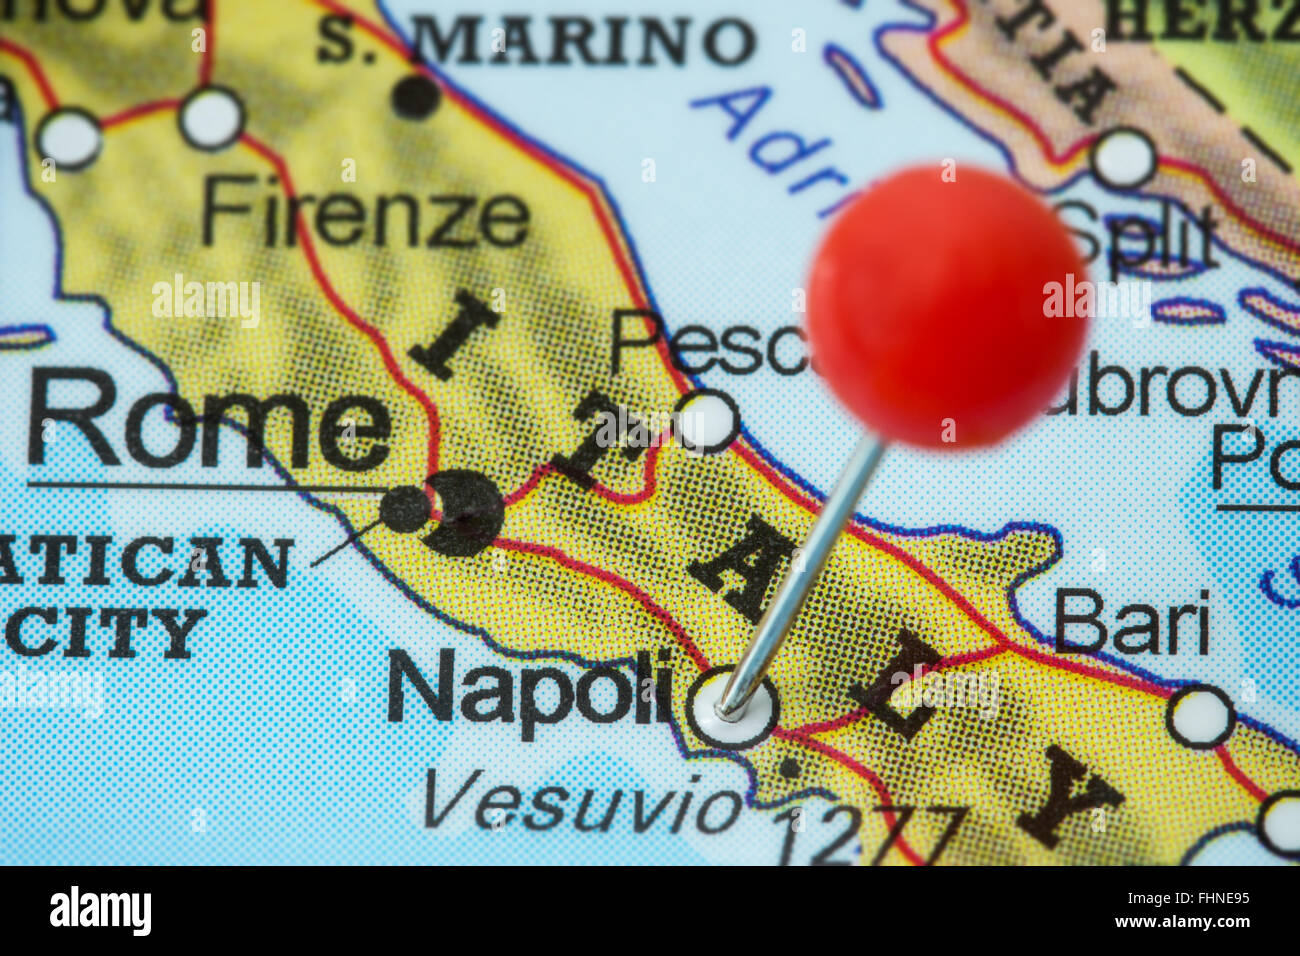 Close-up of a red pushpin in a map of Napoli (Naples), Italy Stock ...